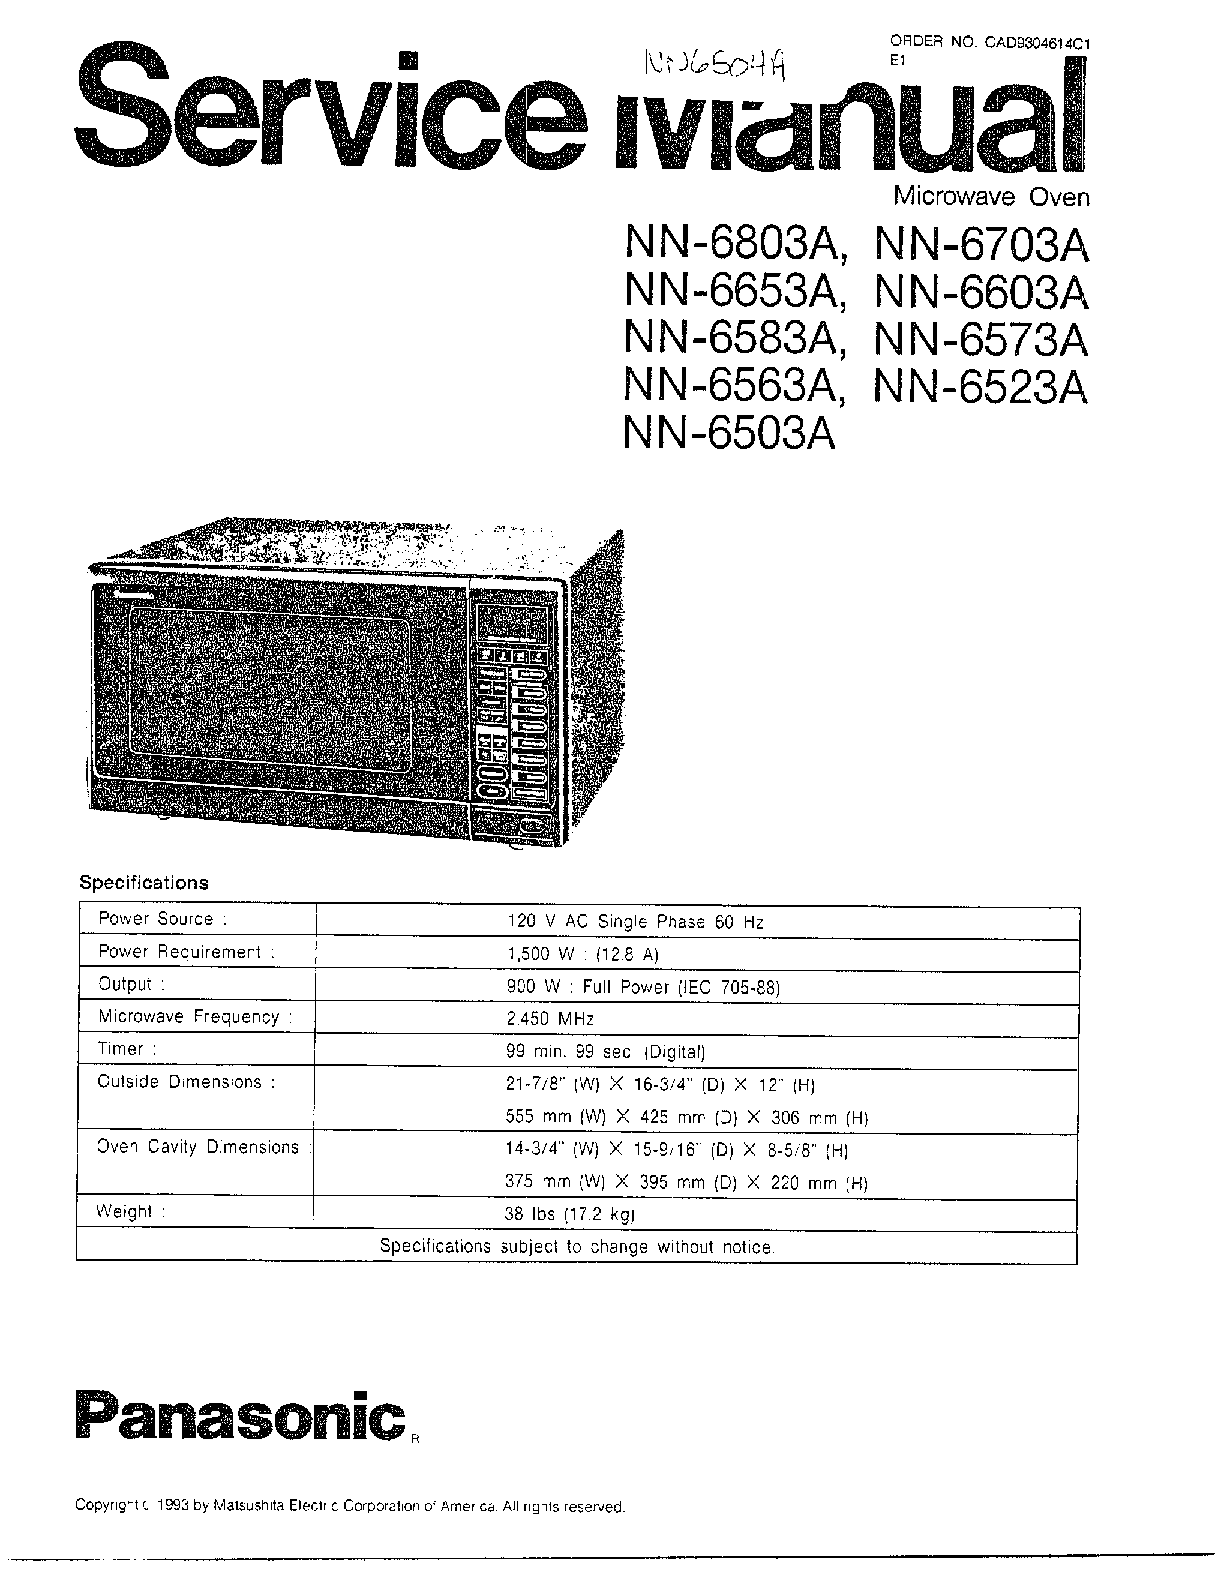 Panasonic model NN6523A countertop microwave genuine parts